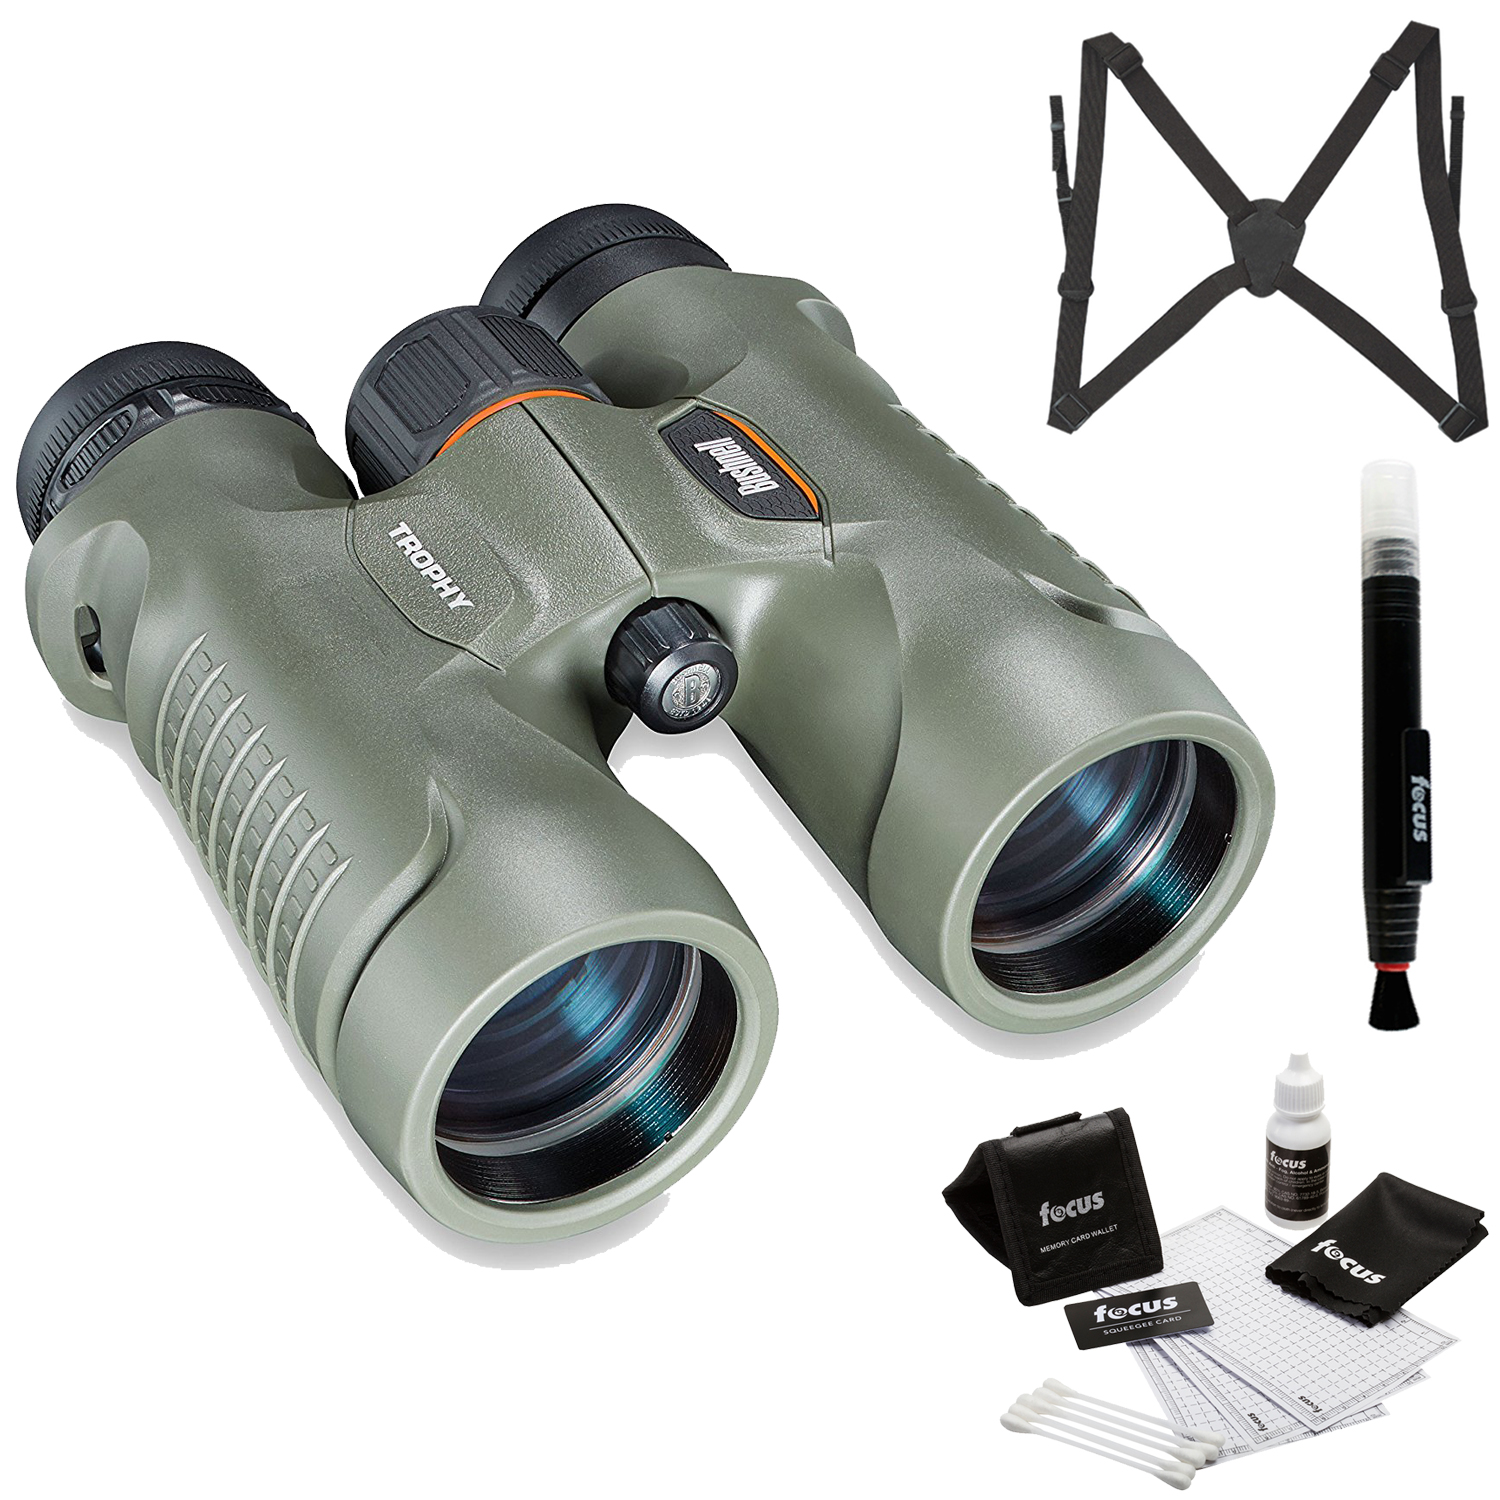 Bushnell Trophy Xtreme 8x32 Roof Prism Binoculars with Ha...